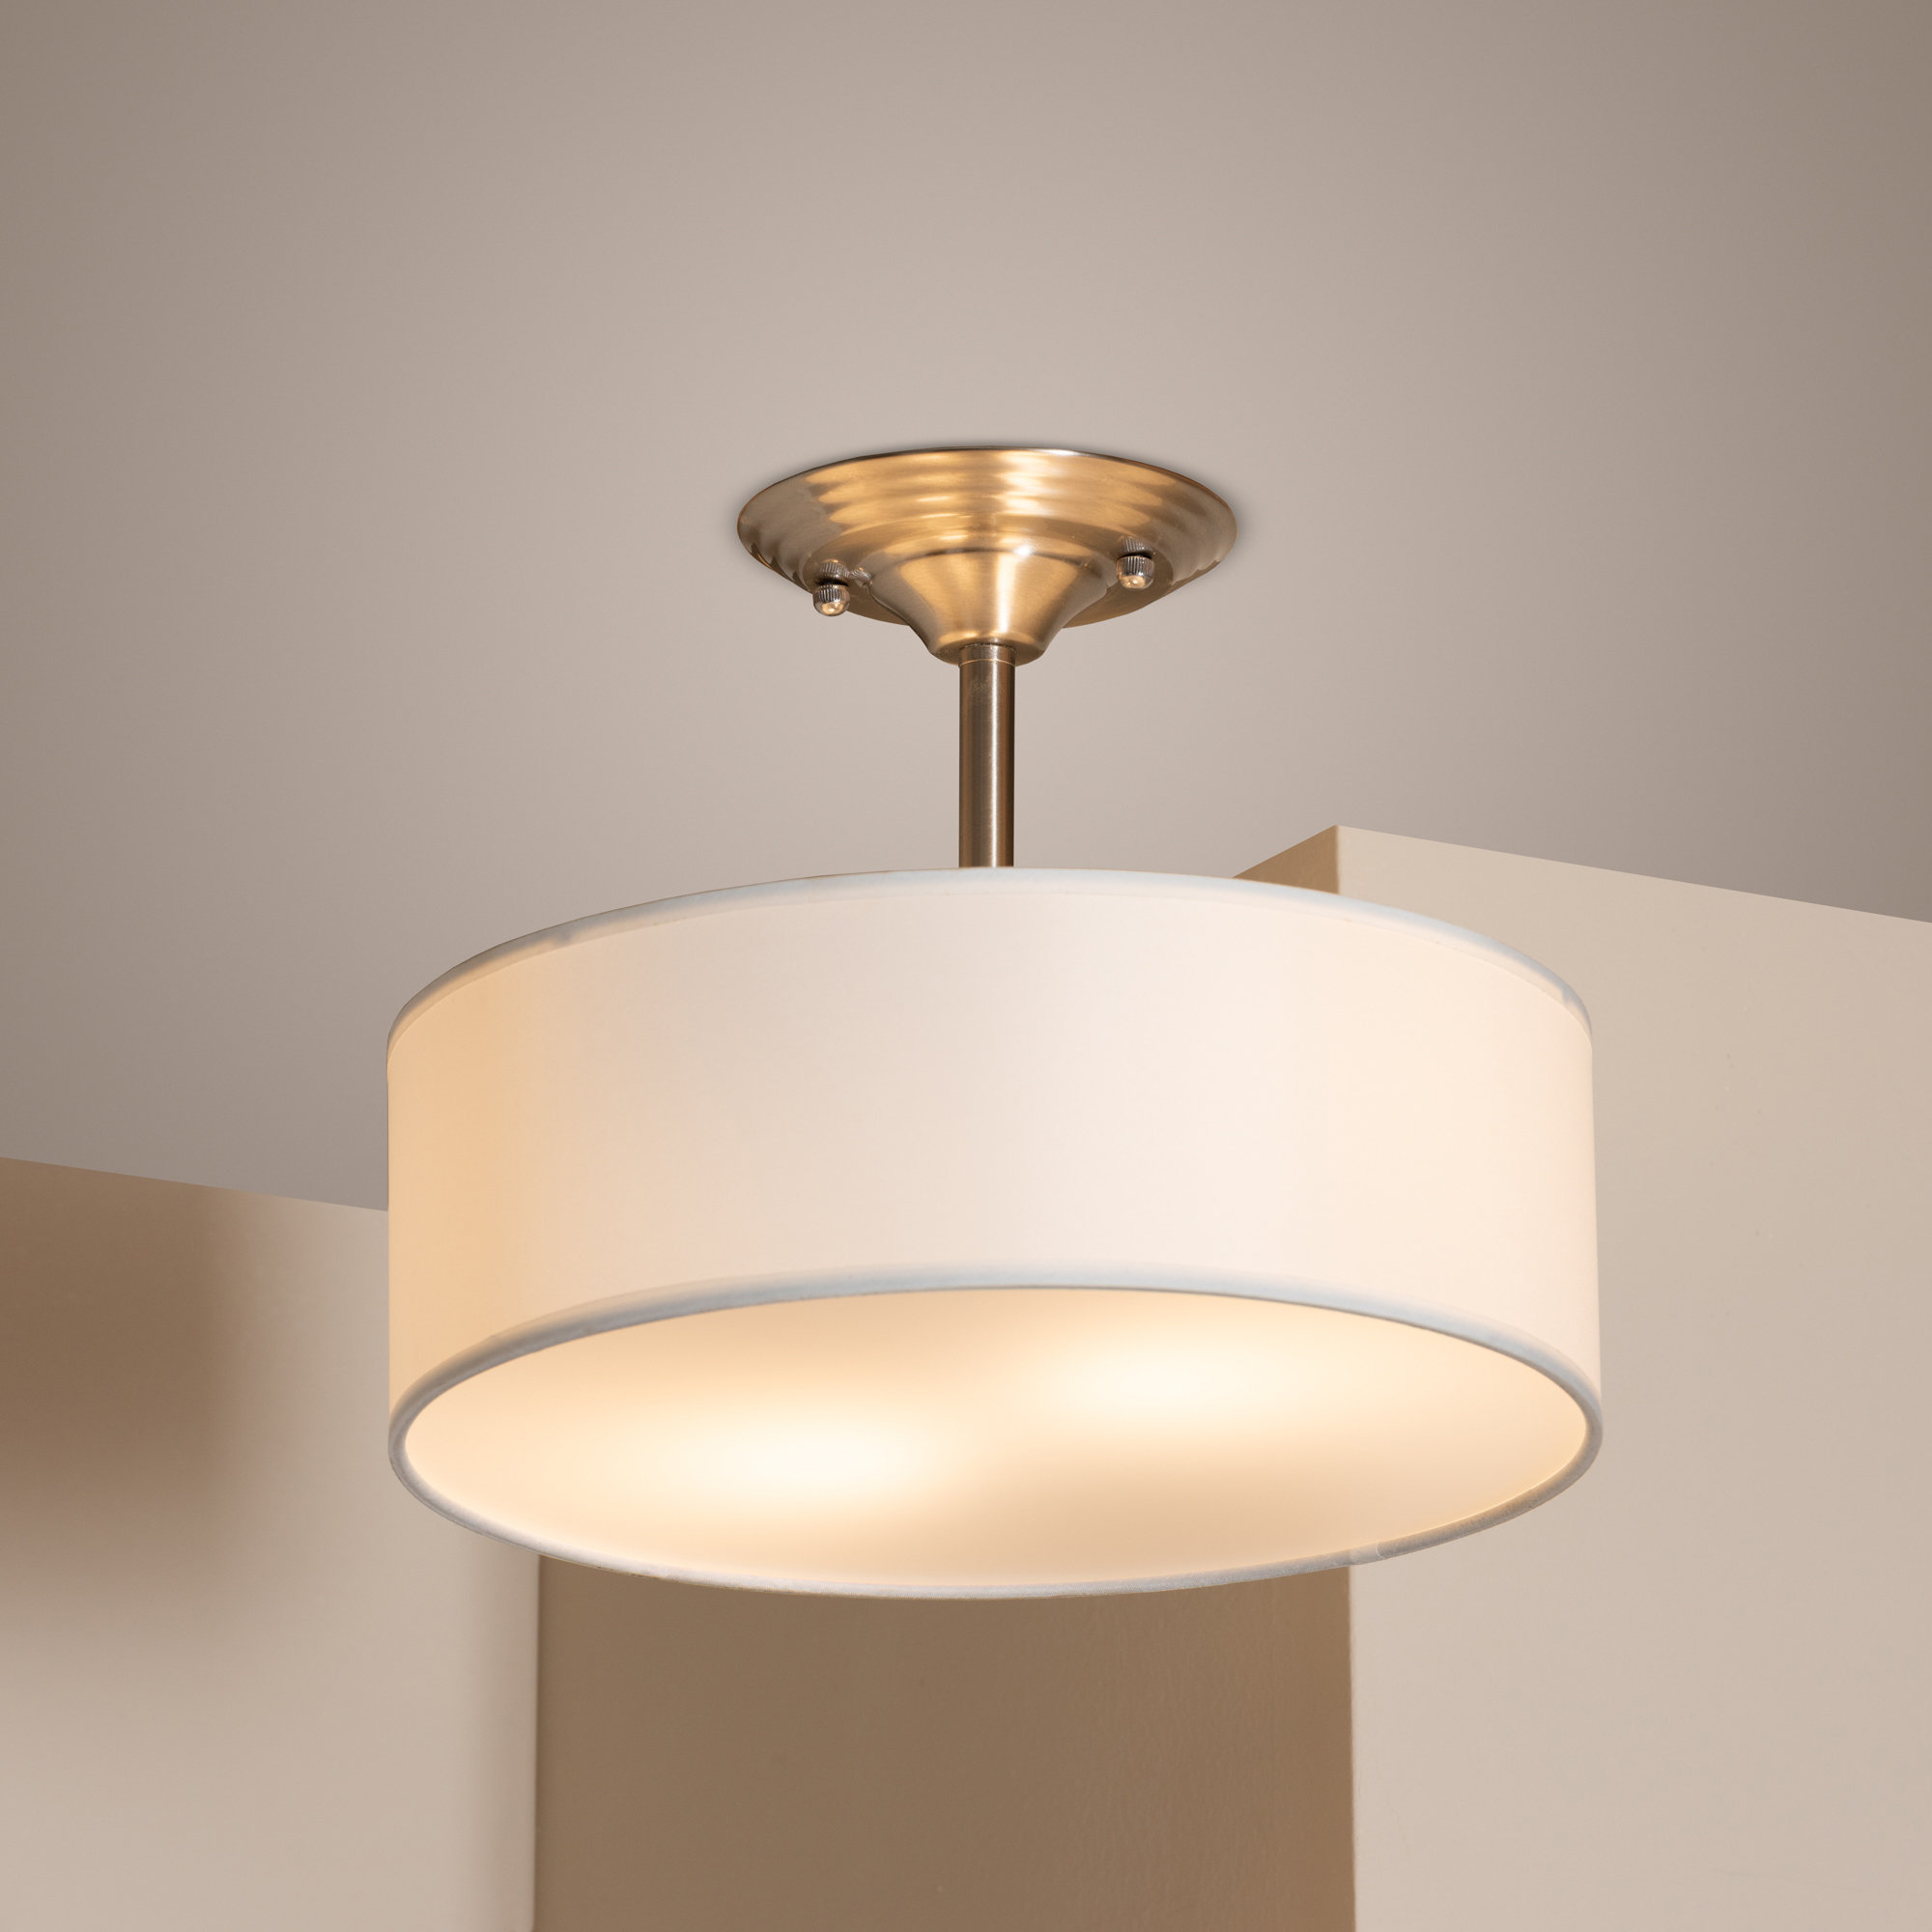 Buchholz 2 Light Drum Pendant Pertaining To Friedland 3 Light Drum Tiered Pendants (View 24 of 30)